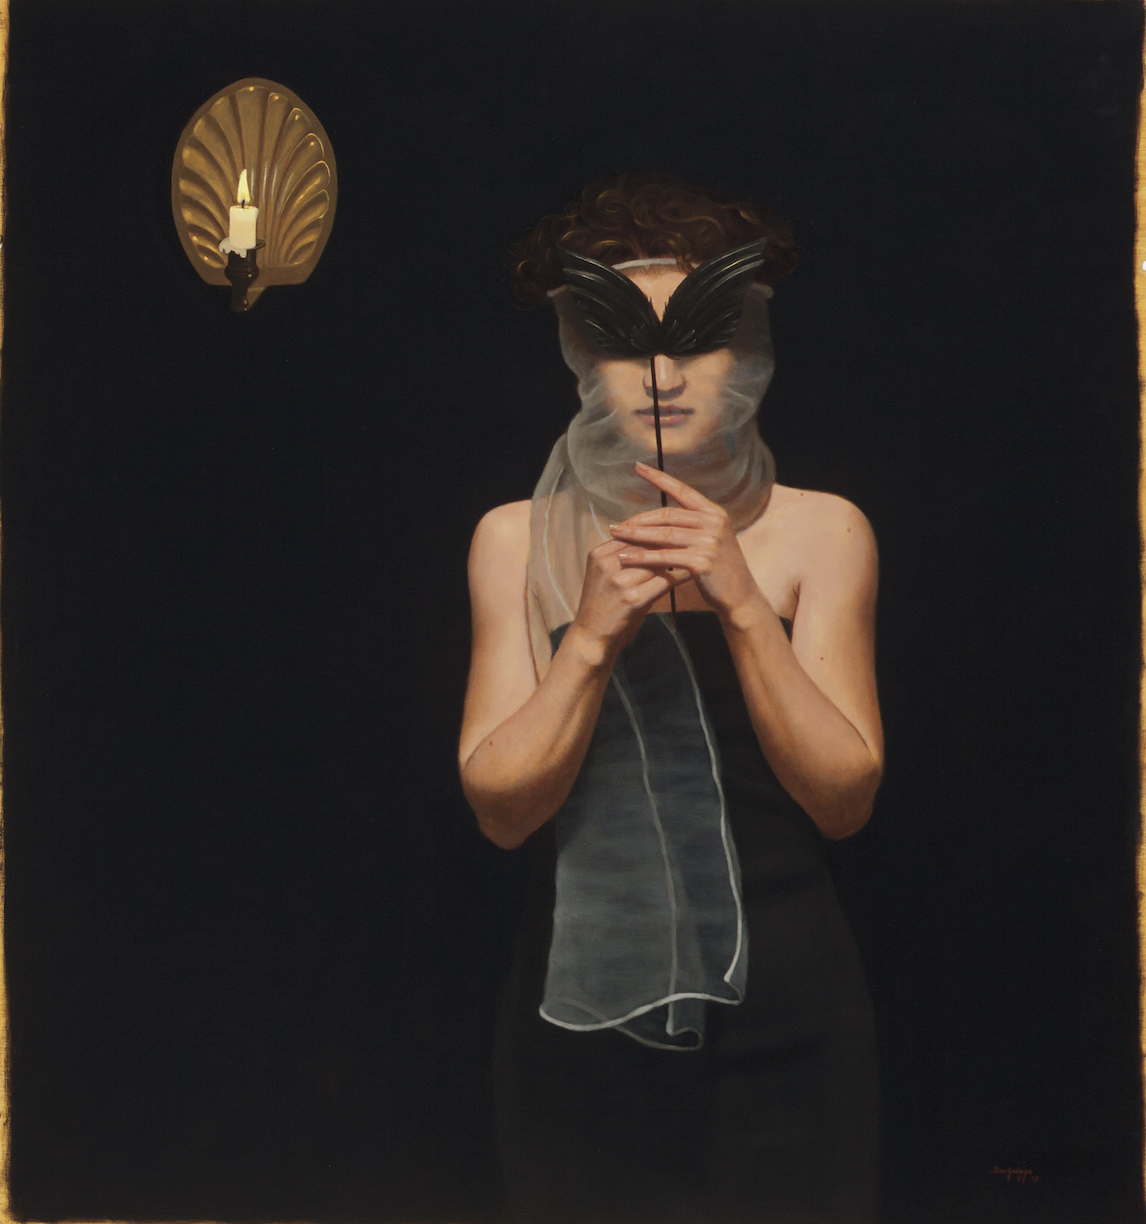 Dan Griggs: Young Woman with Crow's Wing Mask